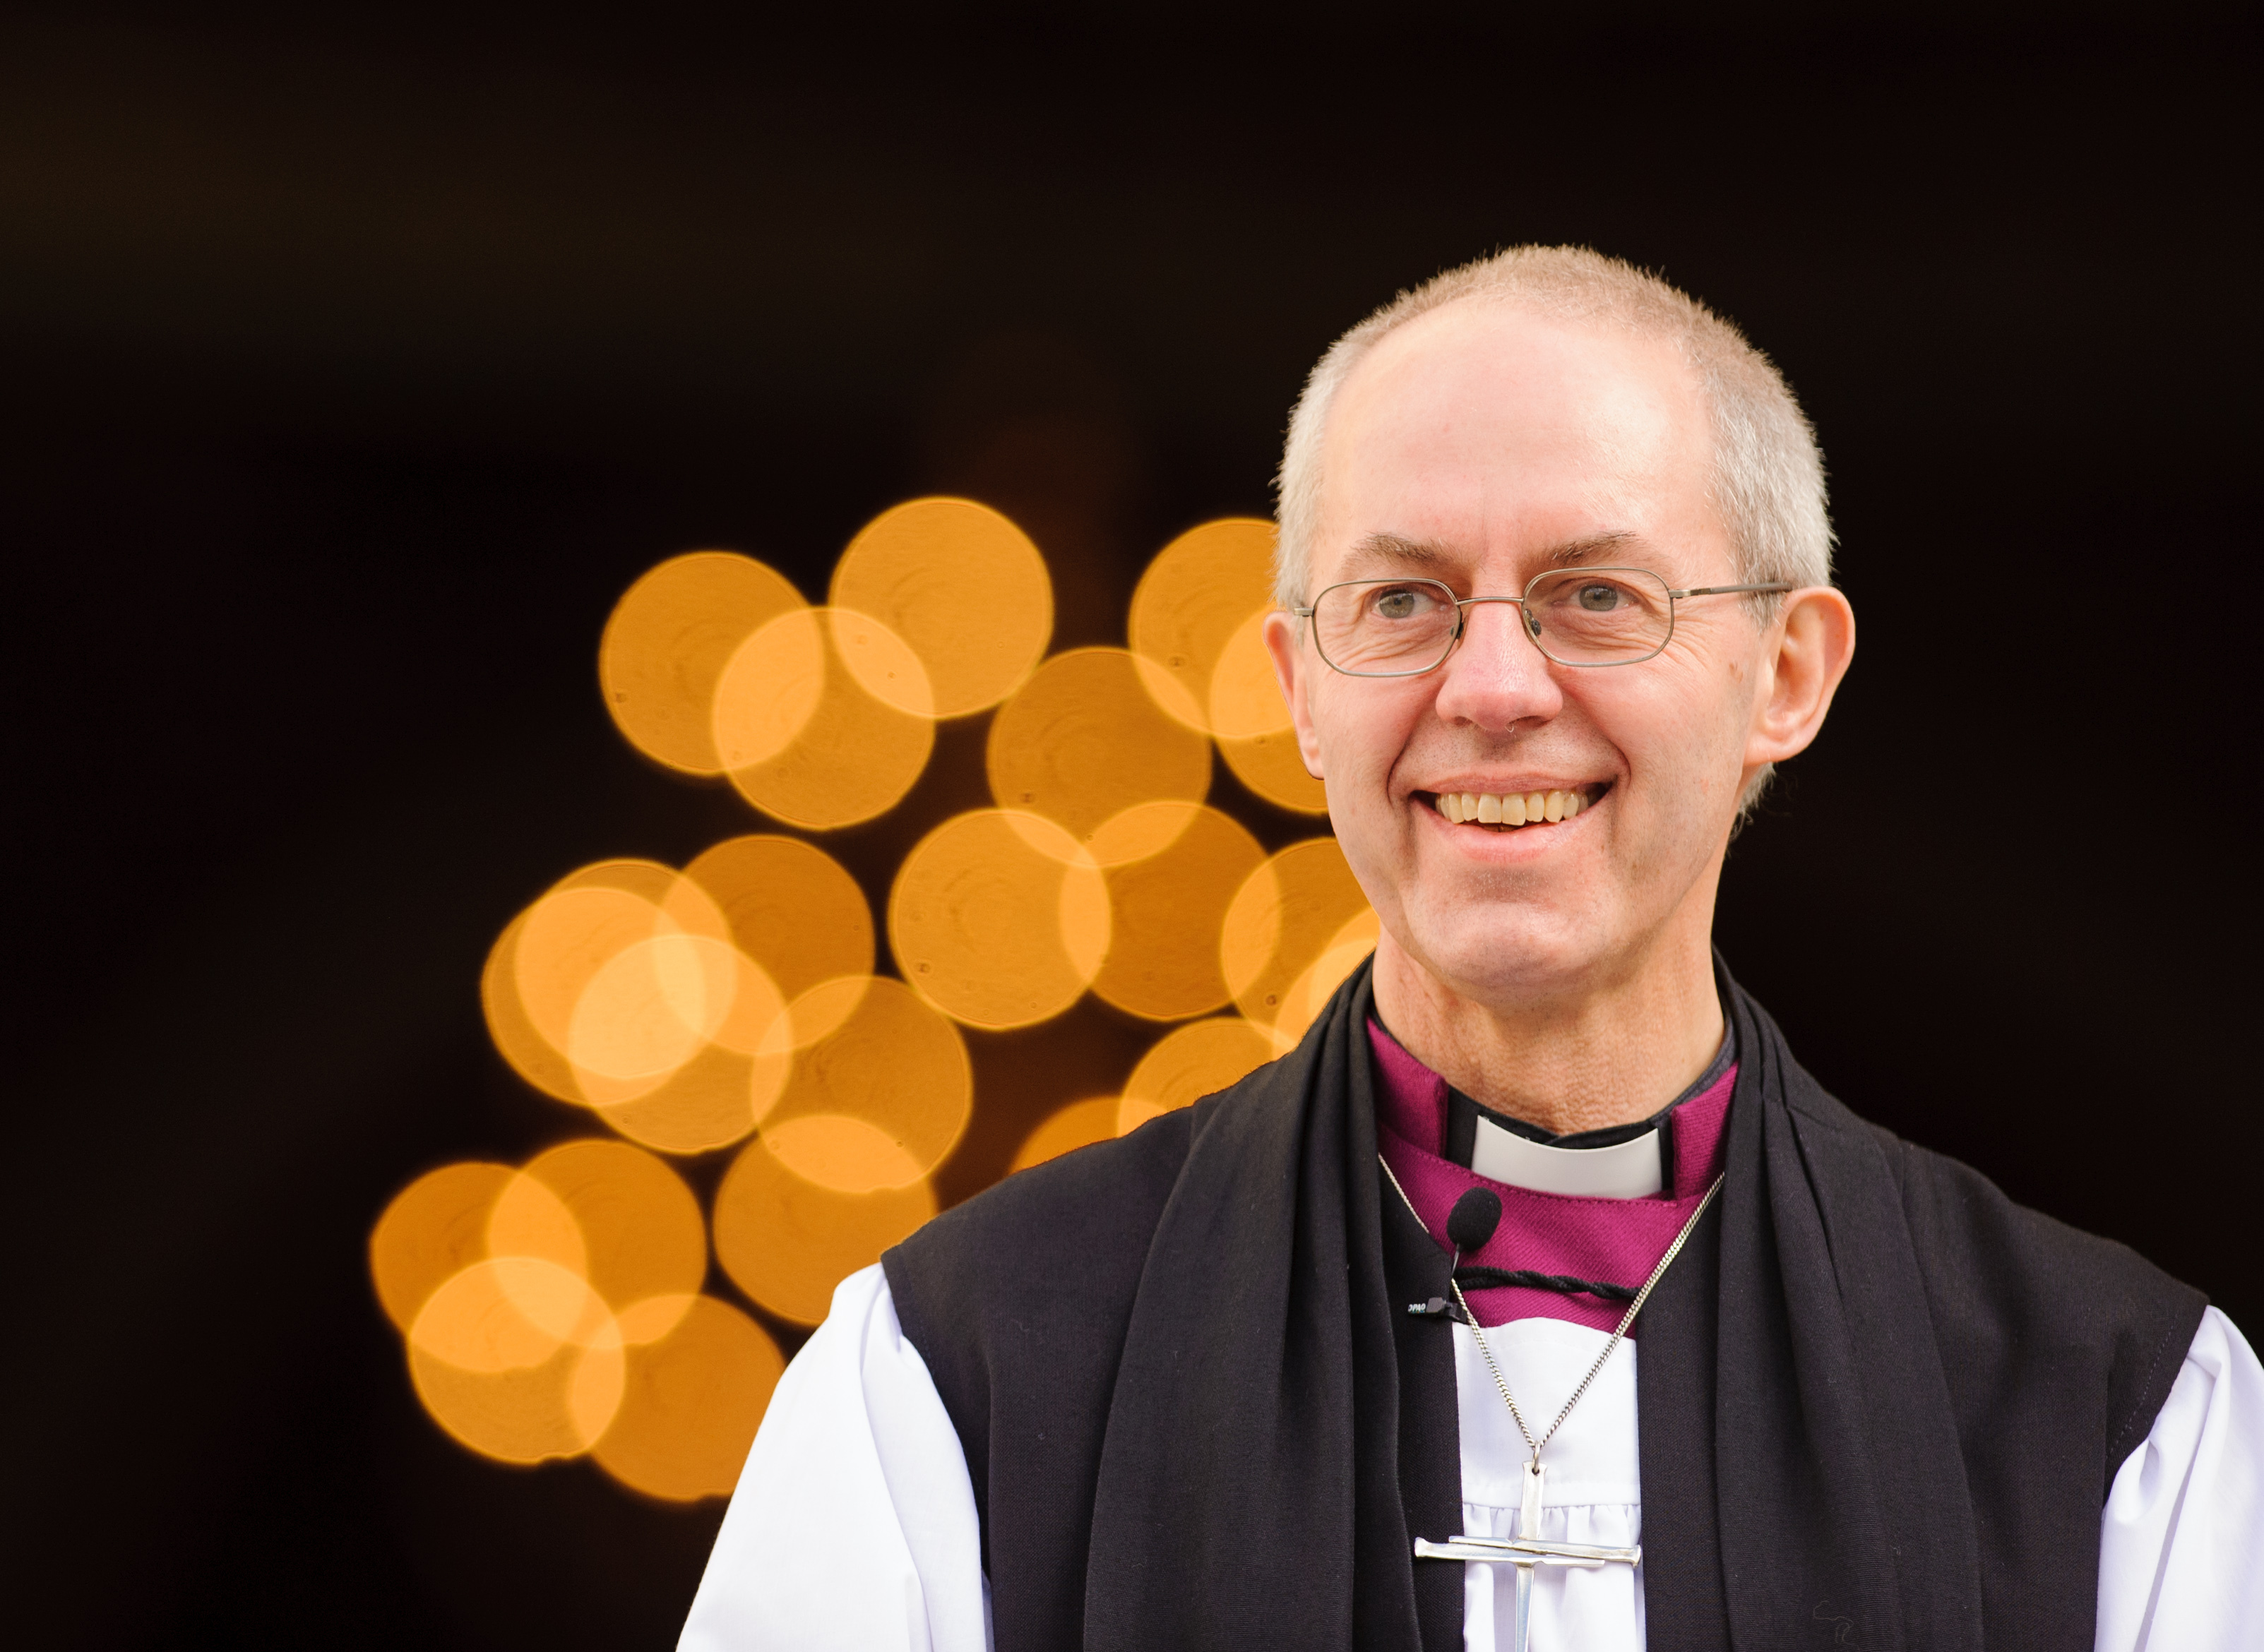 Archbishop of Canterbury: My wife has to keep my drinking in check due to my father's alcoholism